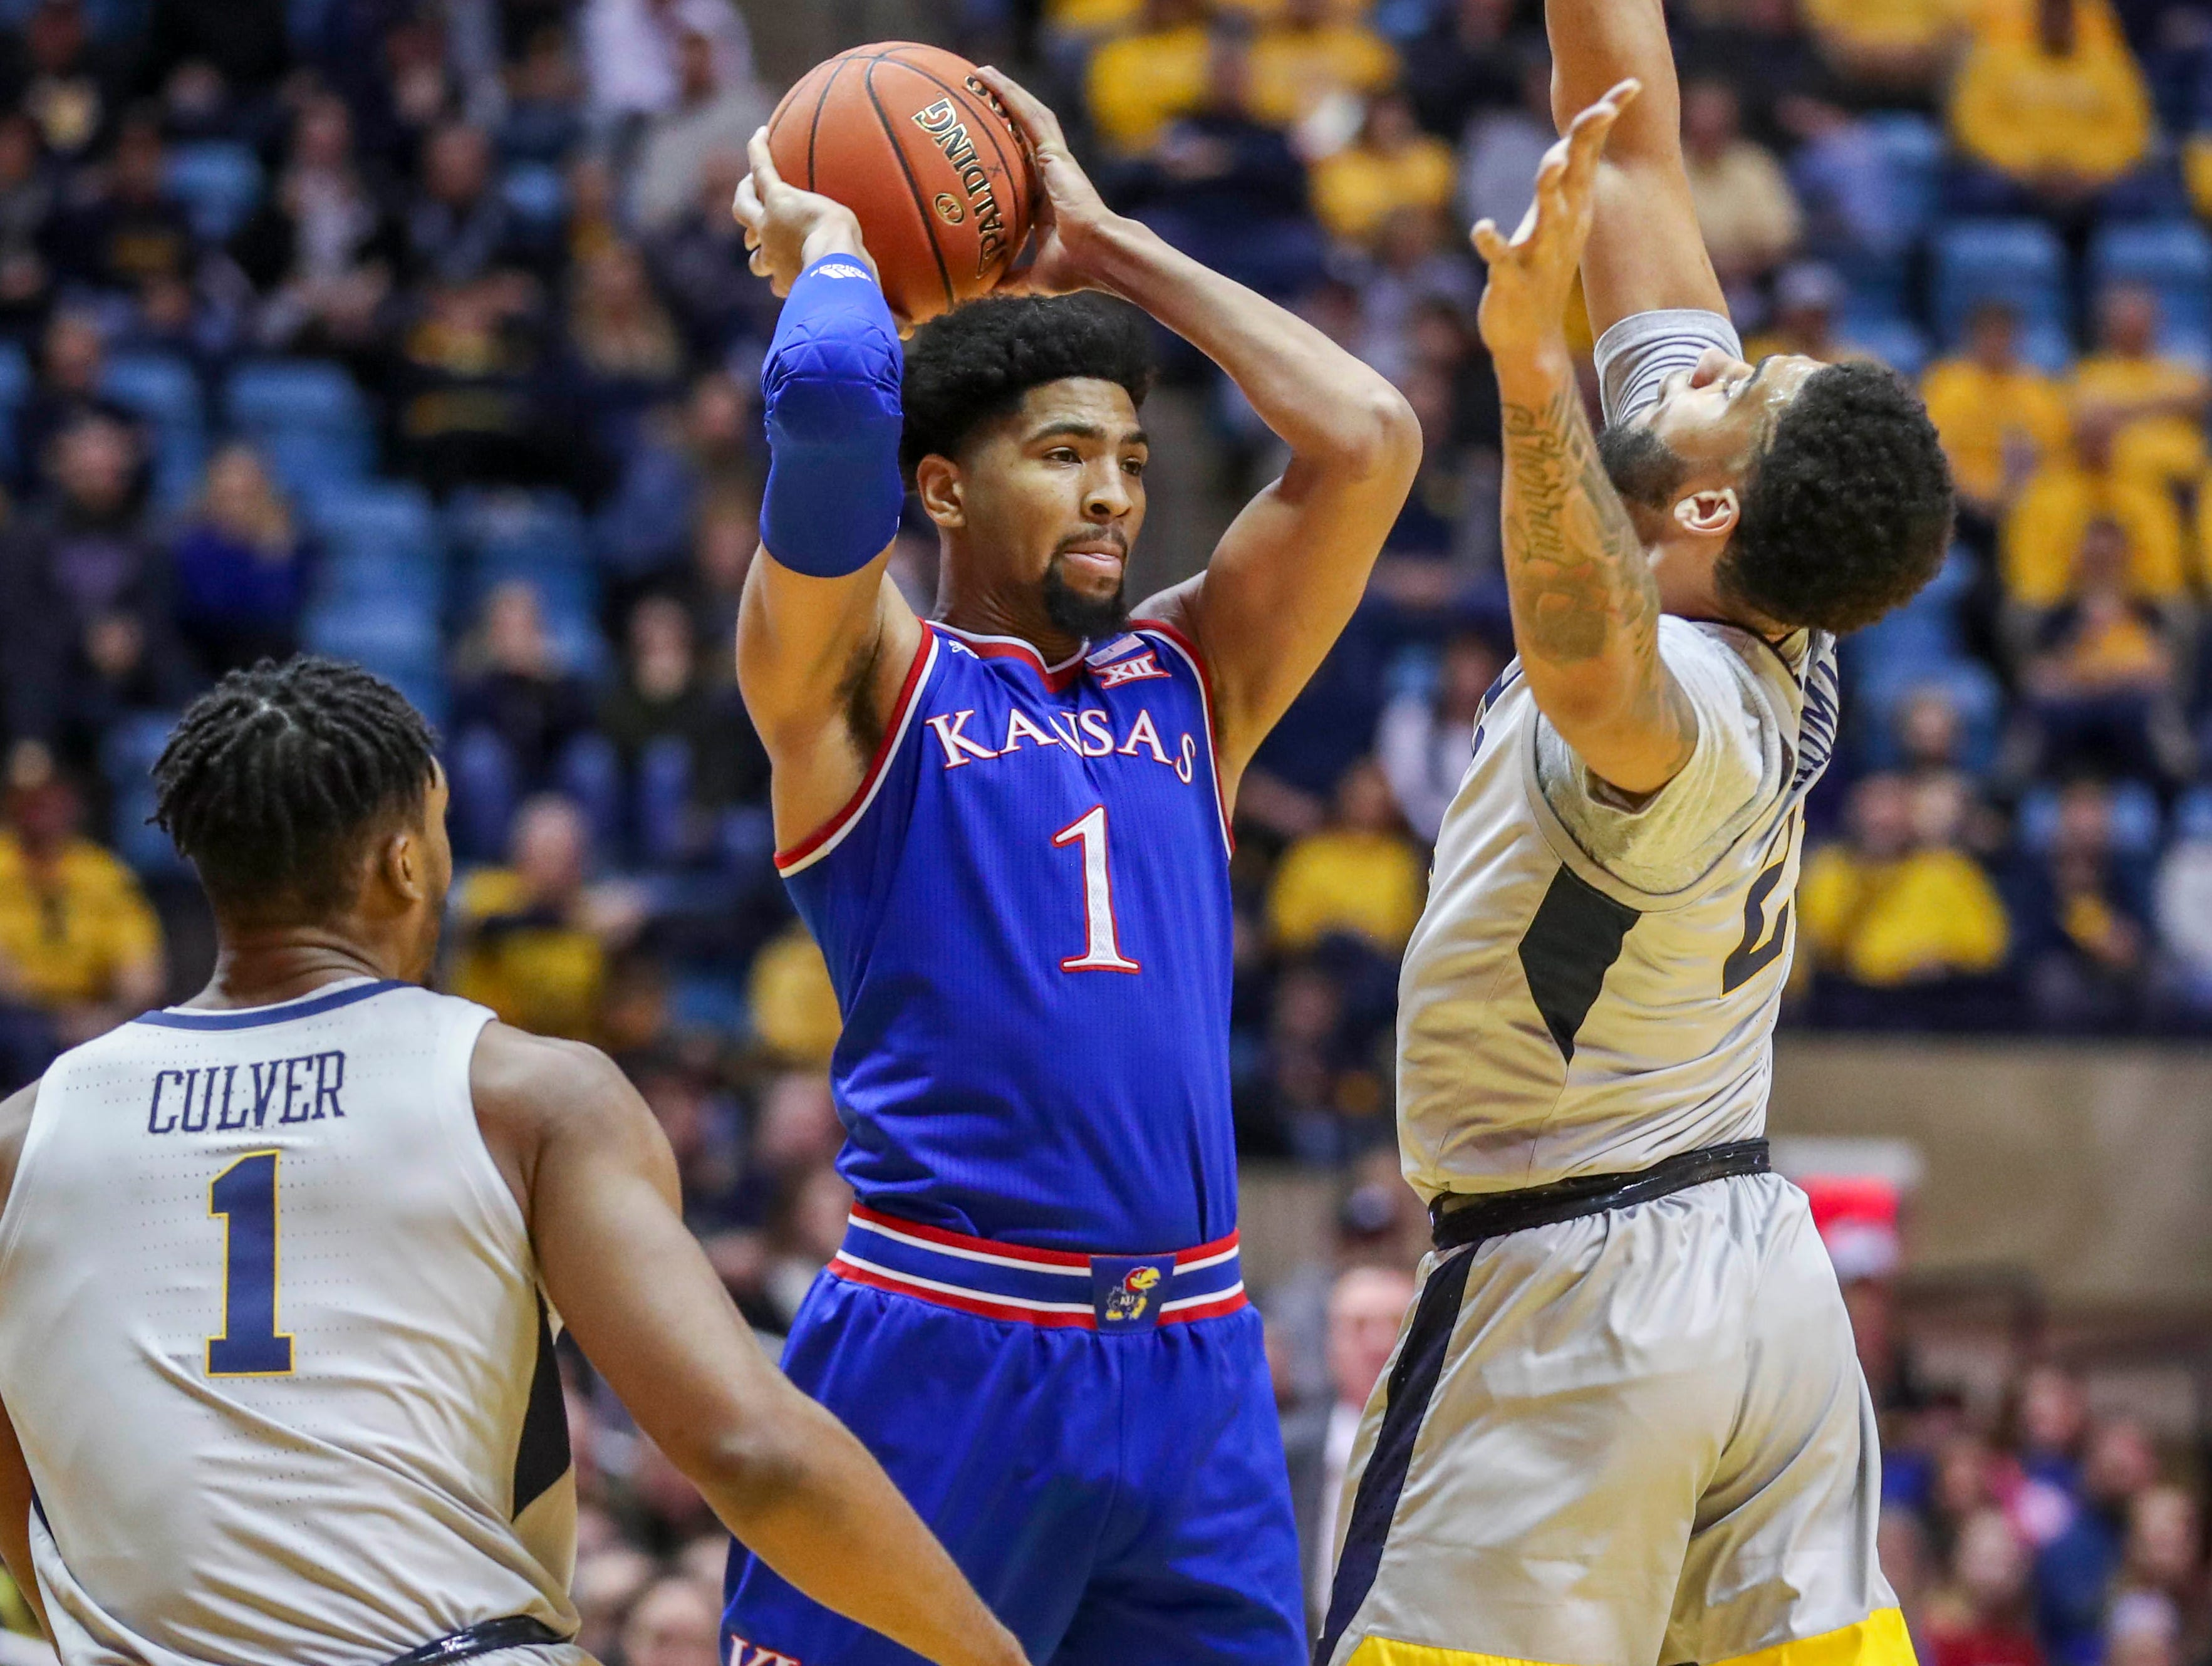 Jayhawks forward Dedric Lawson looked to pass while pressured by West Virginia's Esa Ahmad (23) on Saturday.